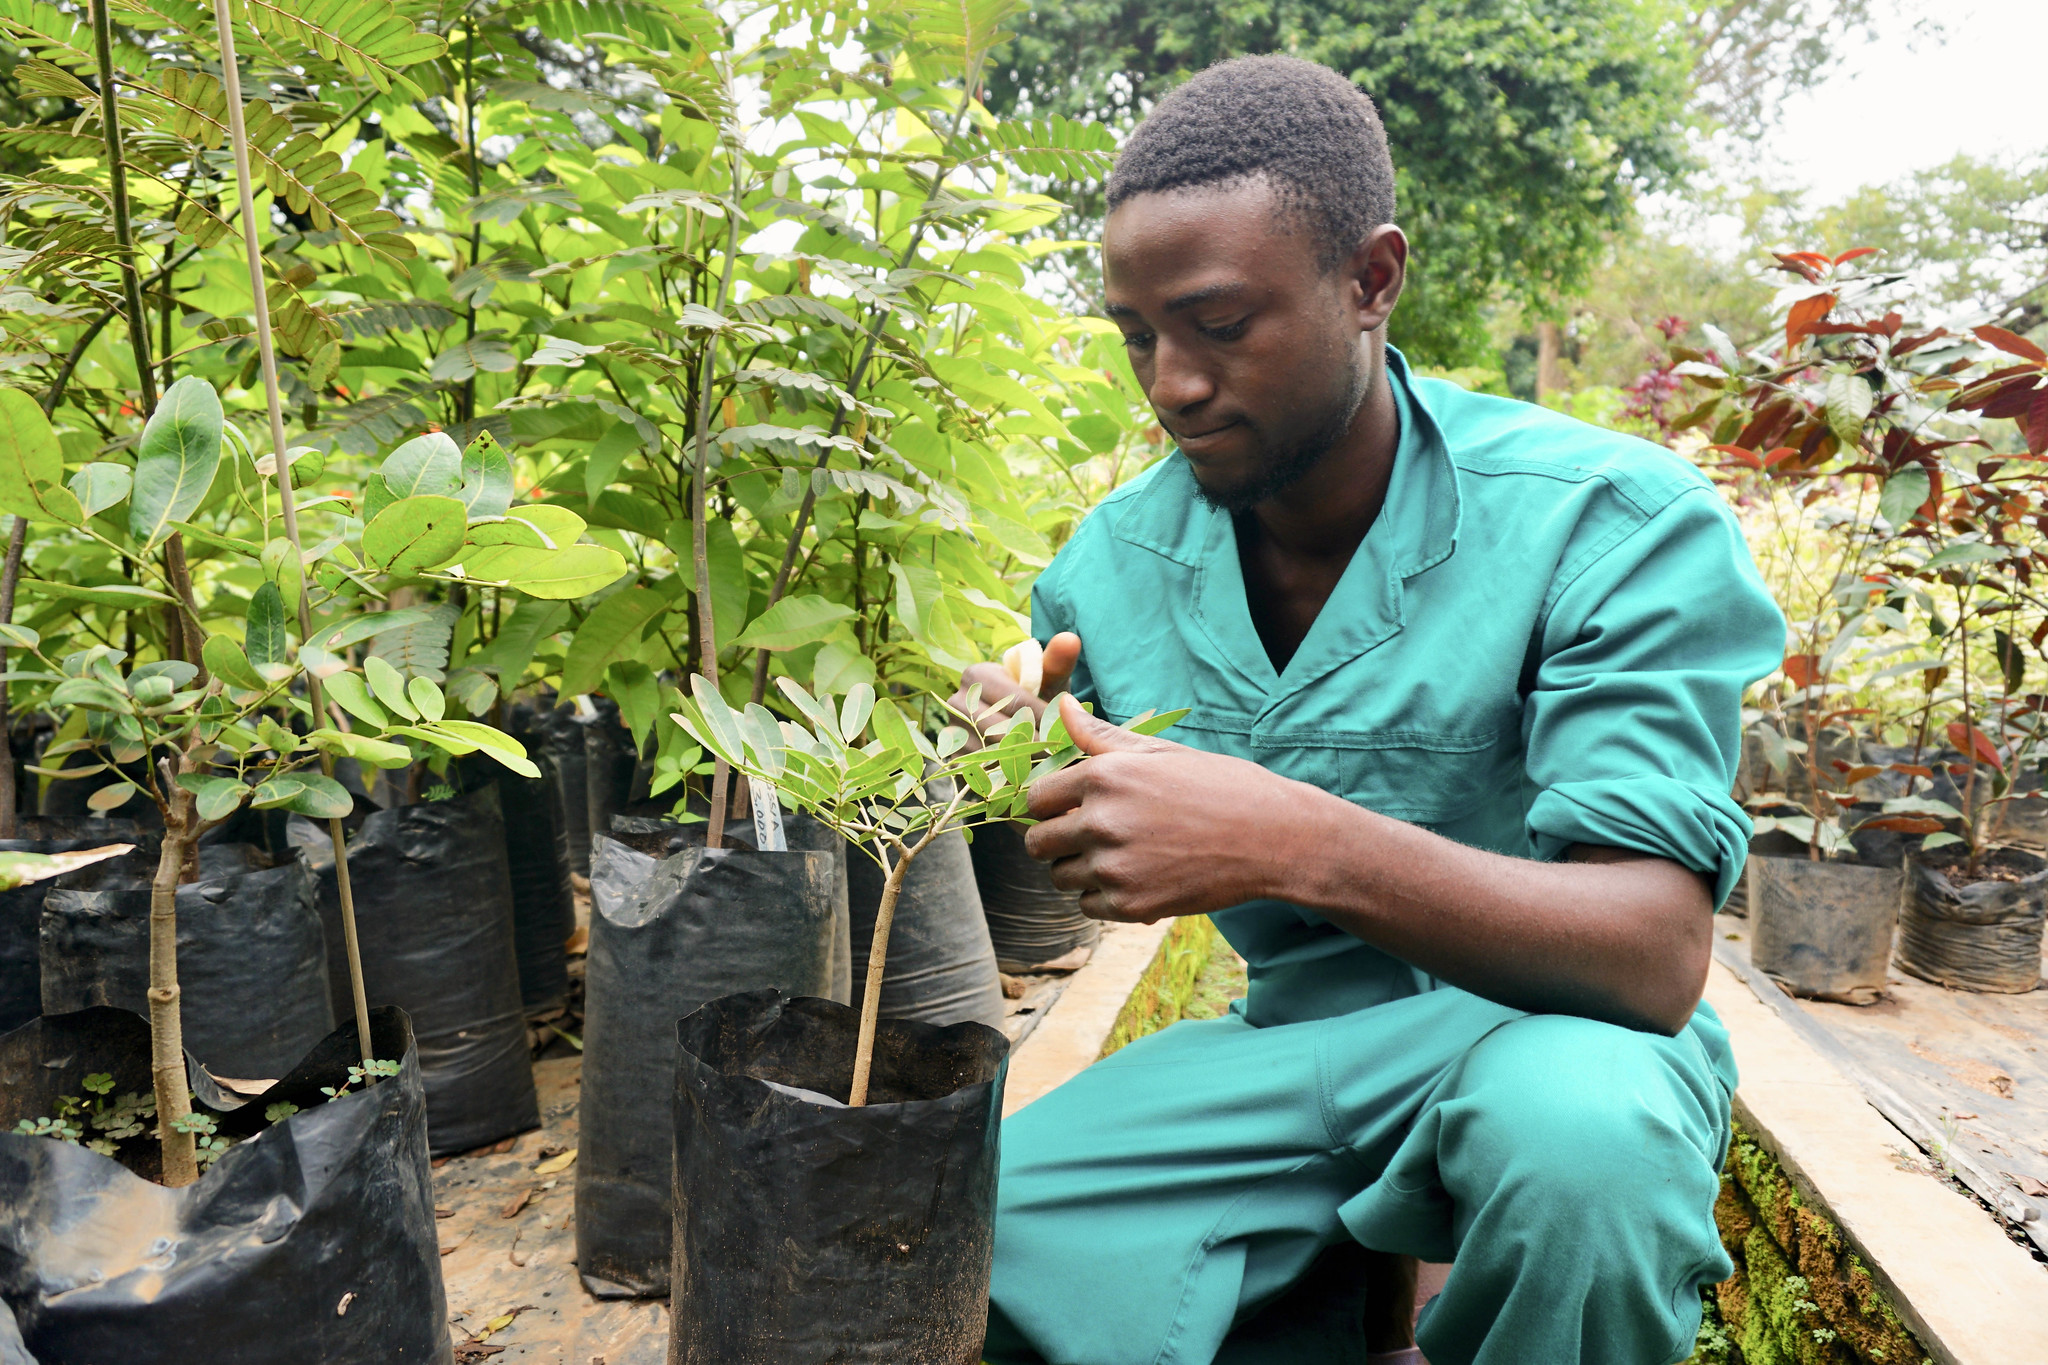 <p>To restore more degraded landscapes, governments and investors need to support small businesses like this plant nursery in Malawi. Photo by Sabin Ray/WRI.</p>